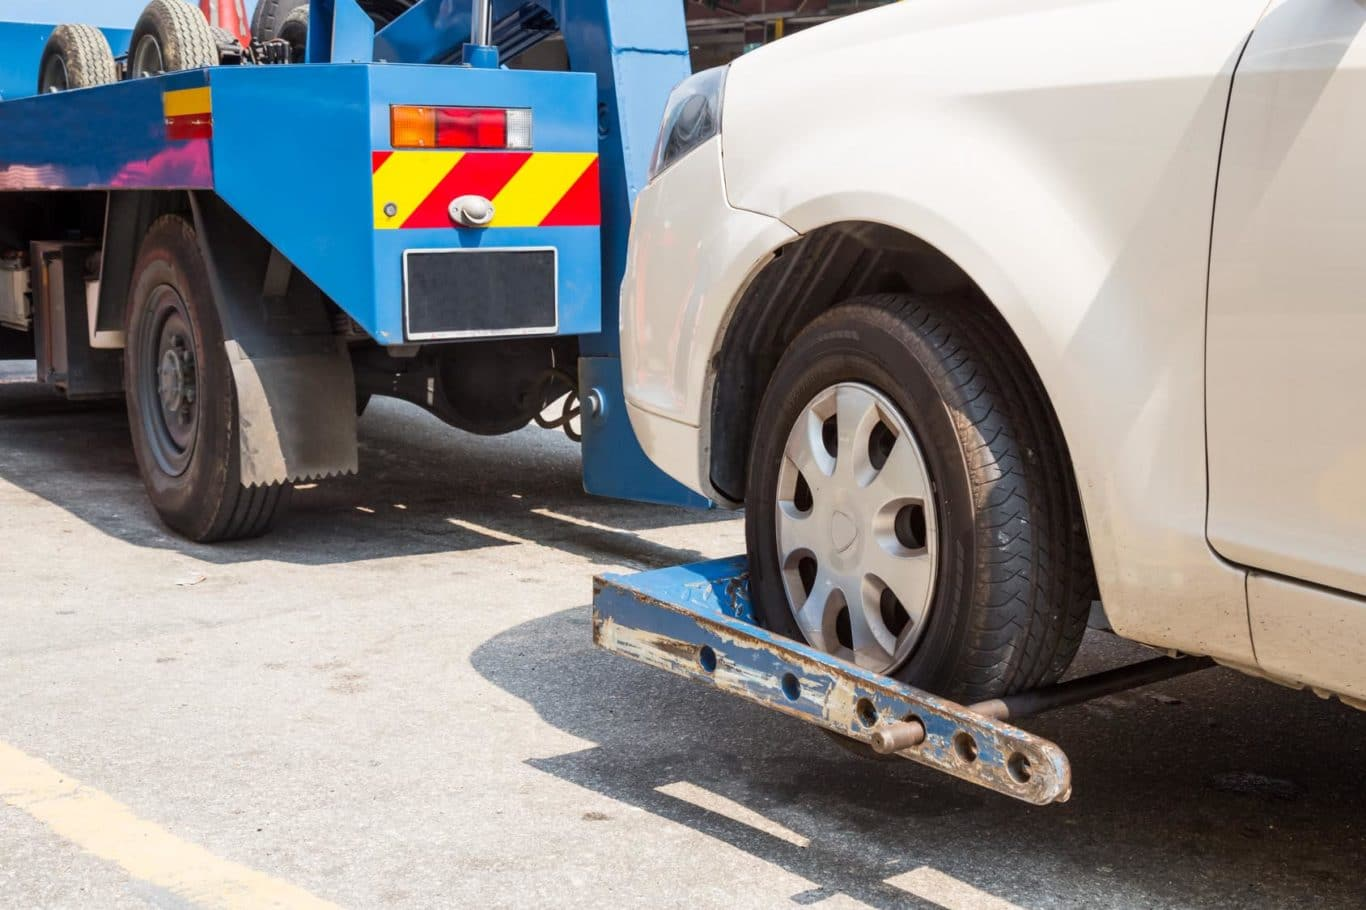 Trim, County Meath expert Breakdown Recovery services